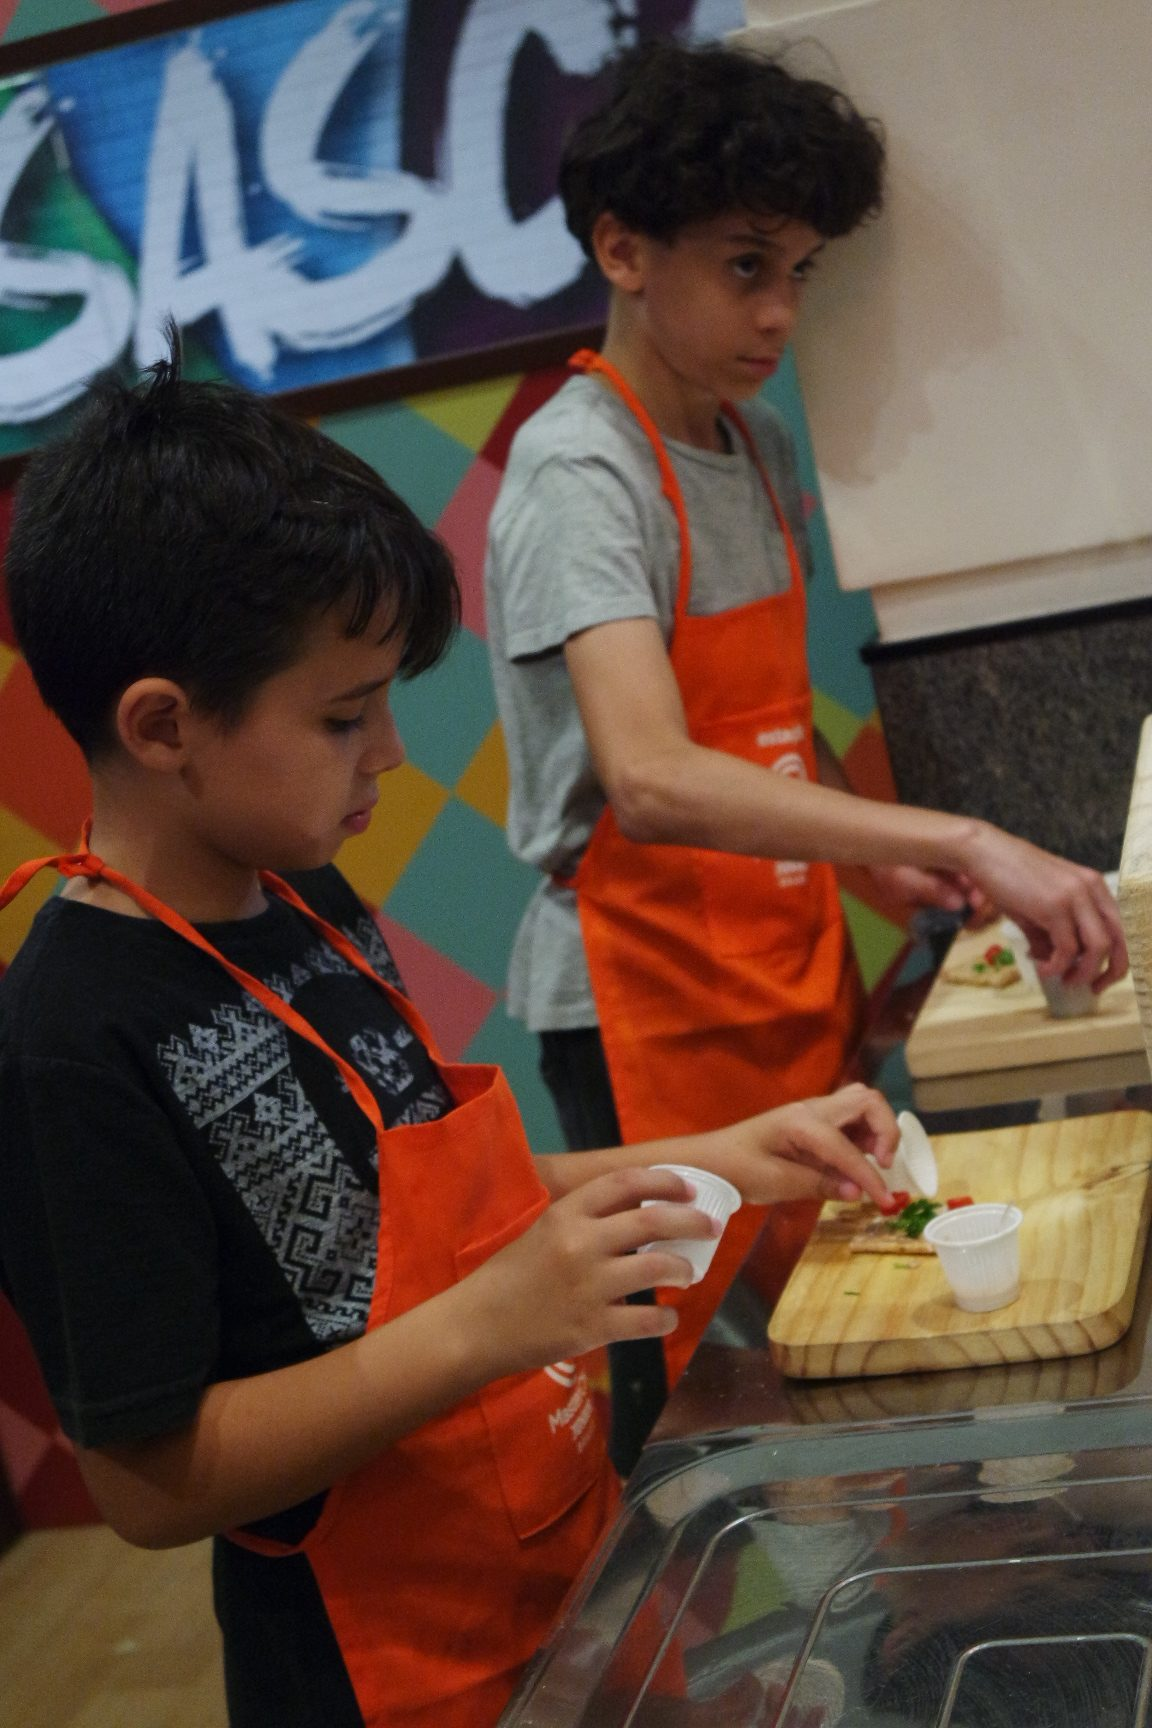 Estacao-MasterChef-Junior-SuperShopping-Osasco-site-Cultura-Osasco-